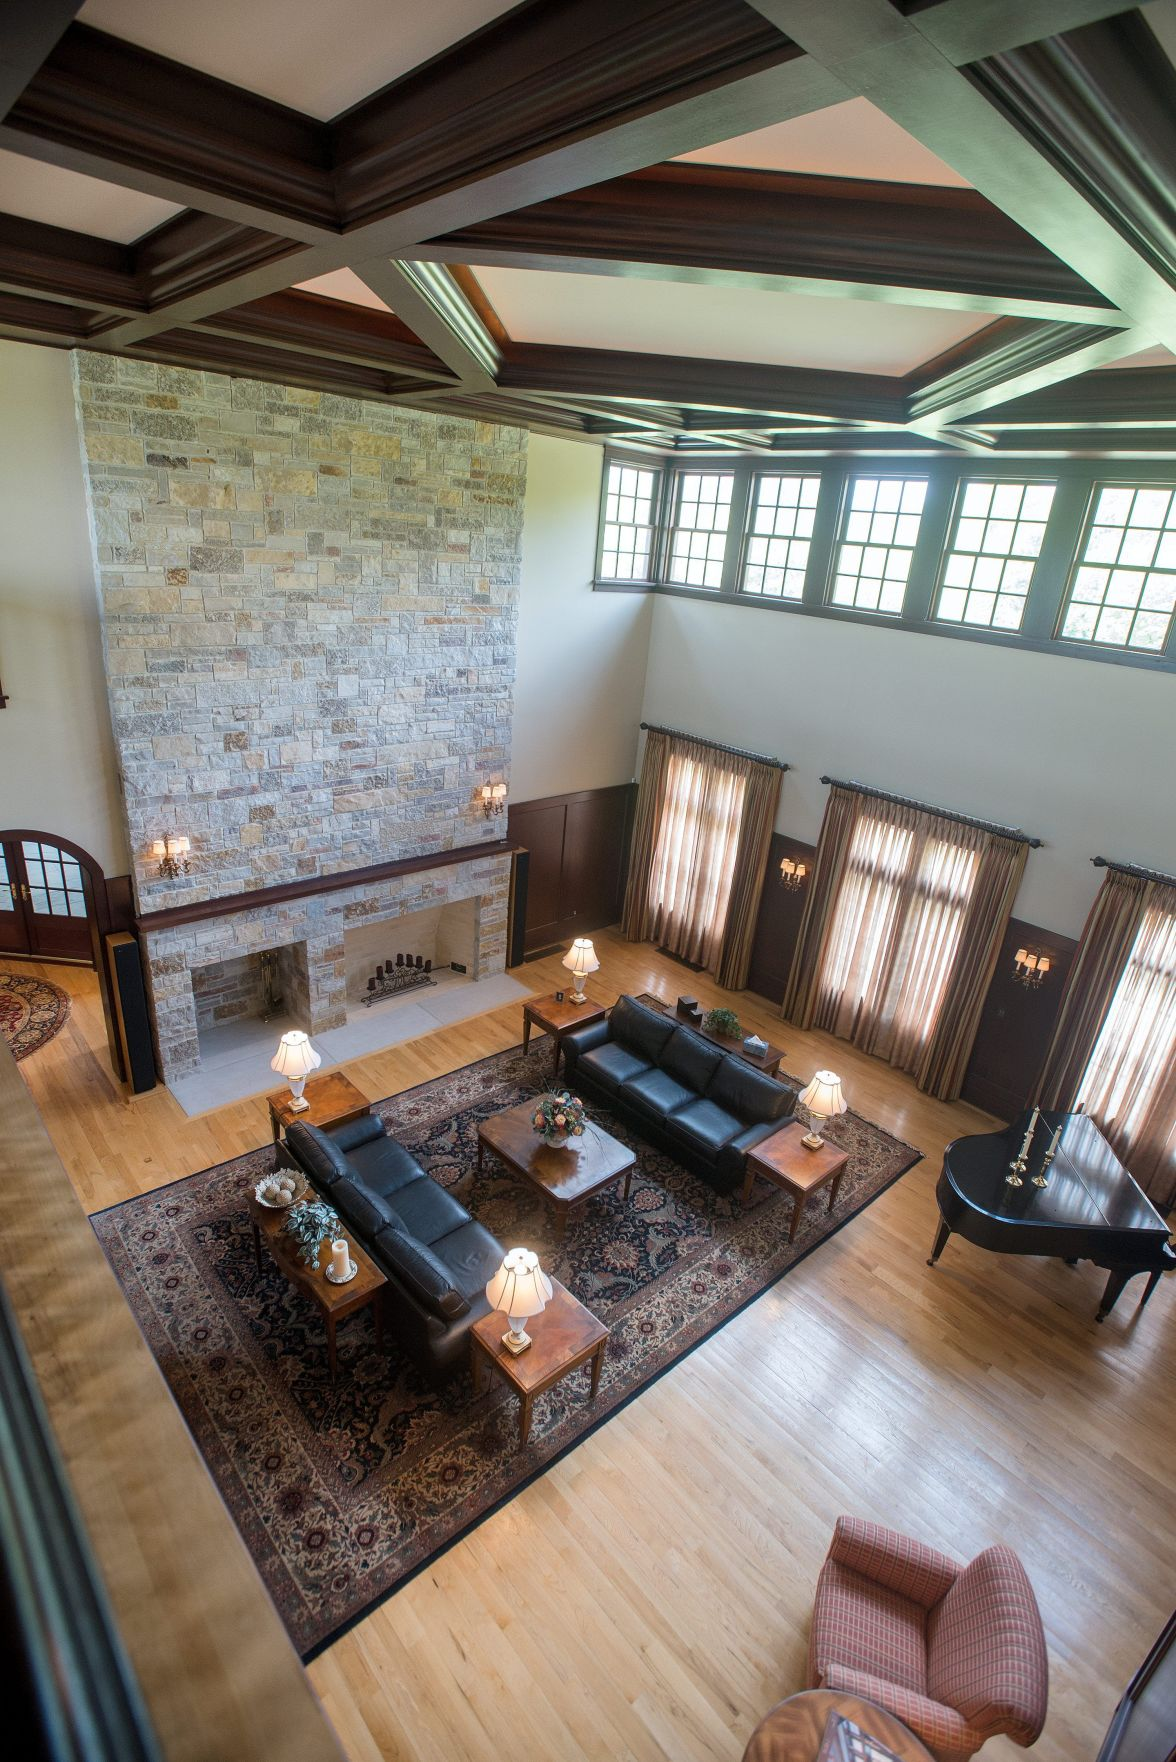 UI grad's mansion can be yours for at least $850,000